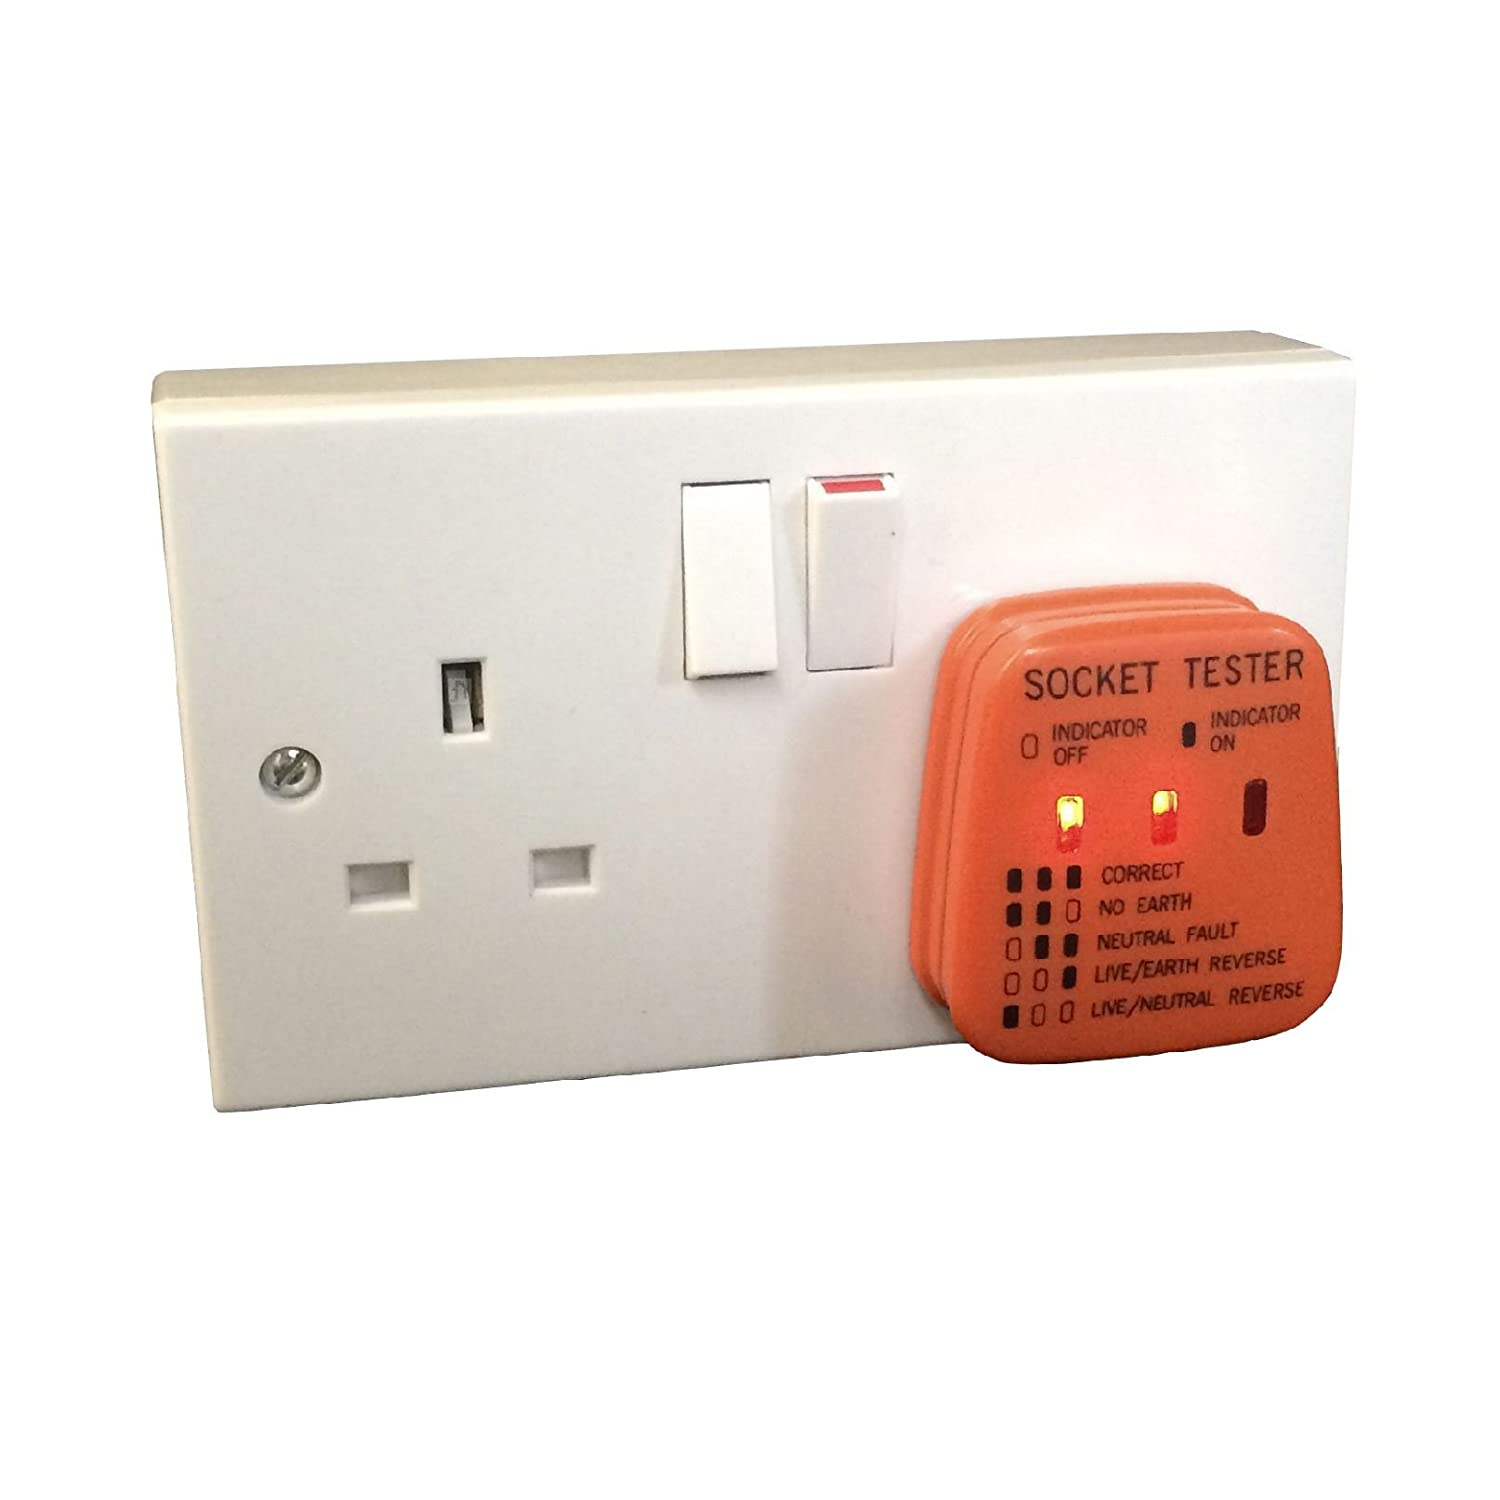 Uk Mains Socket Tester 240v Polarity Test 3 Pin Plug House Wiring A Earth Electrical Diy Tools